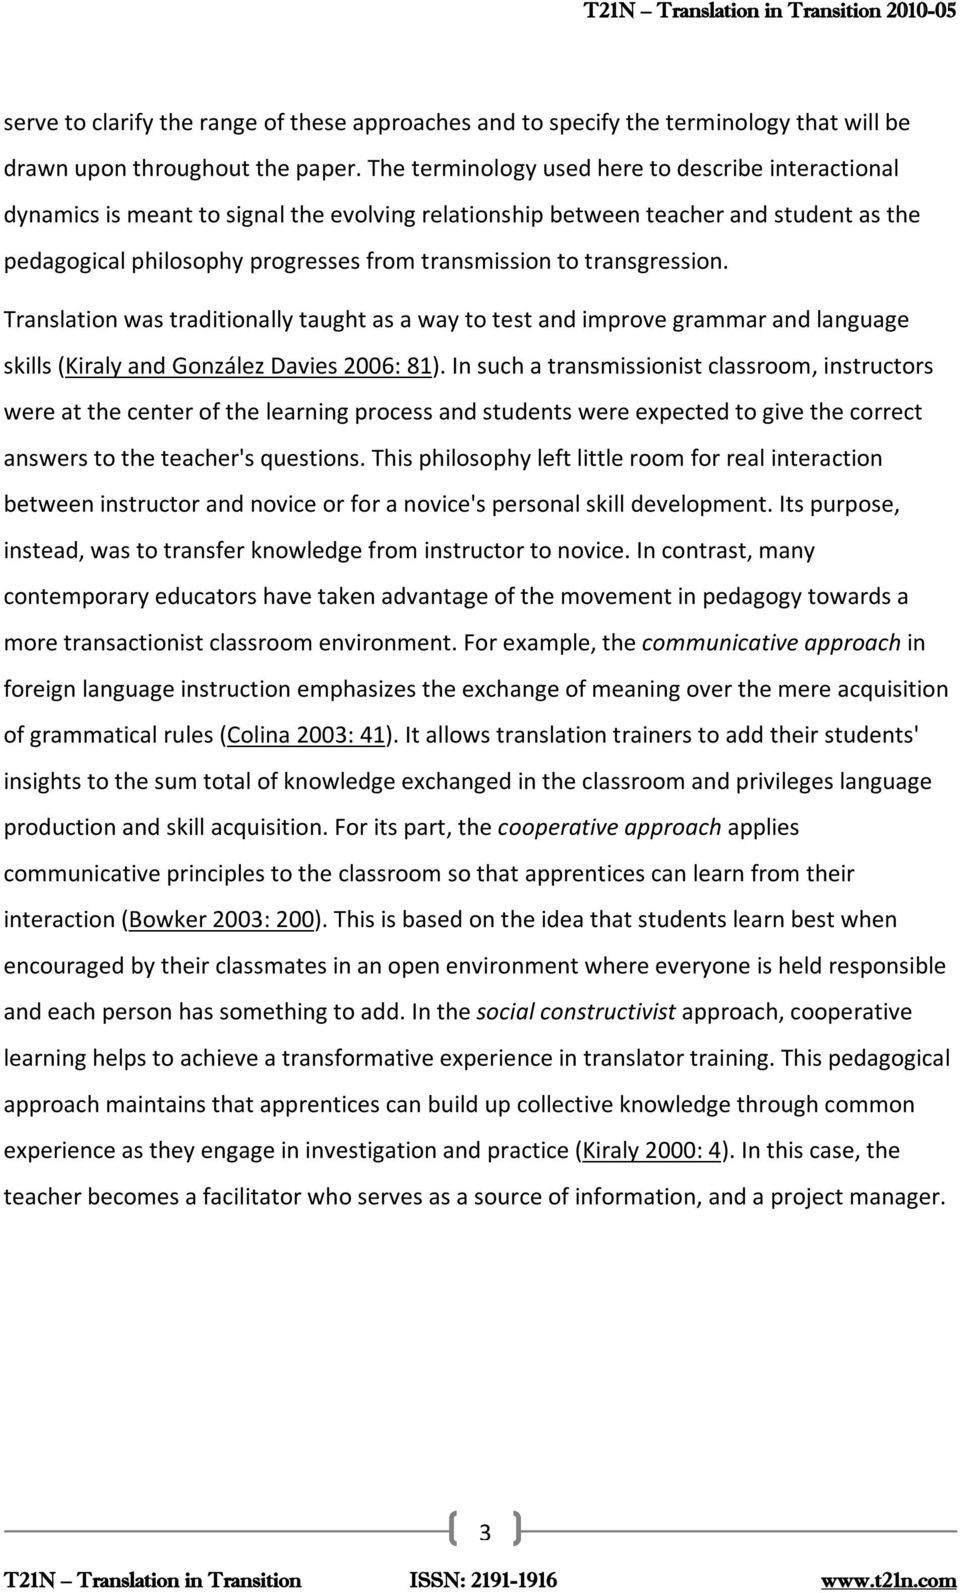 transgression. Translation was traditionally taught as a way to test and improve grammar and language skills (Kiraly and González Davies 2006: 81).